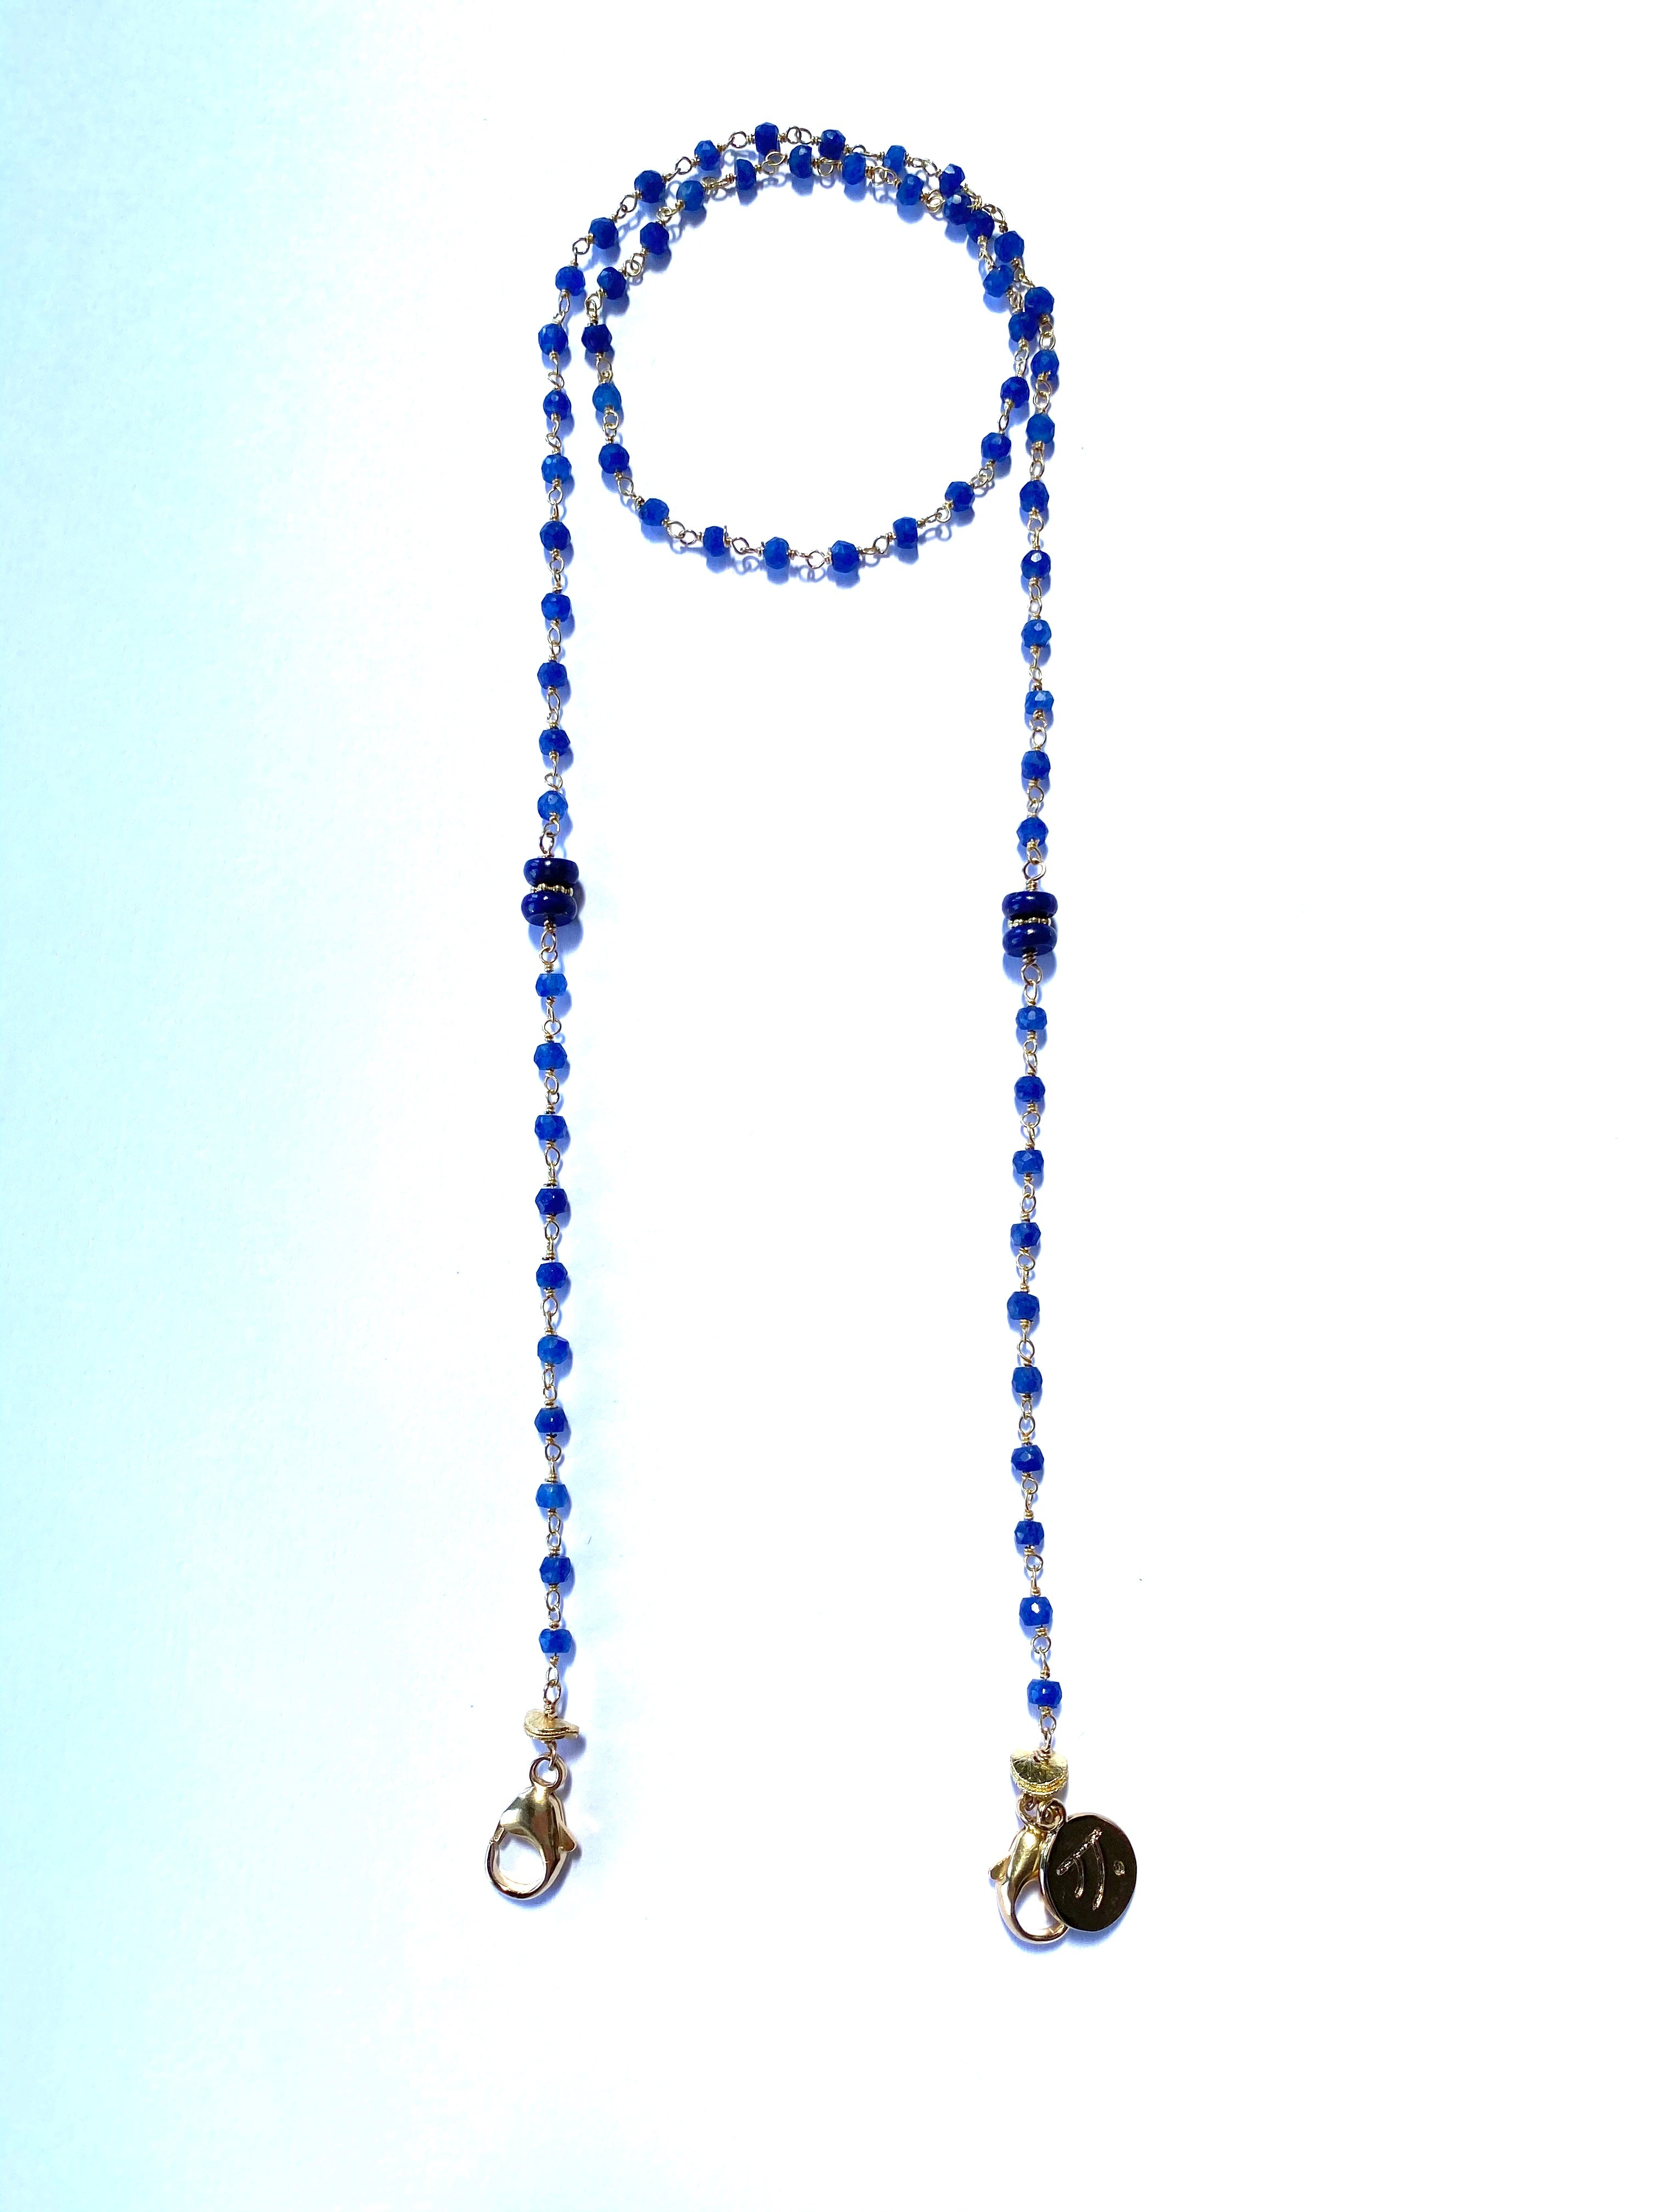 Face Mask, Eye Glass Holder Chain - Sapphire and 14K gold filled